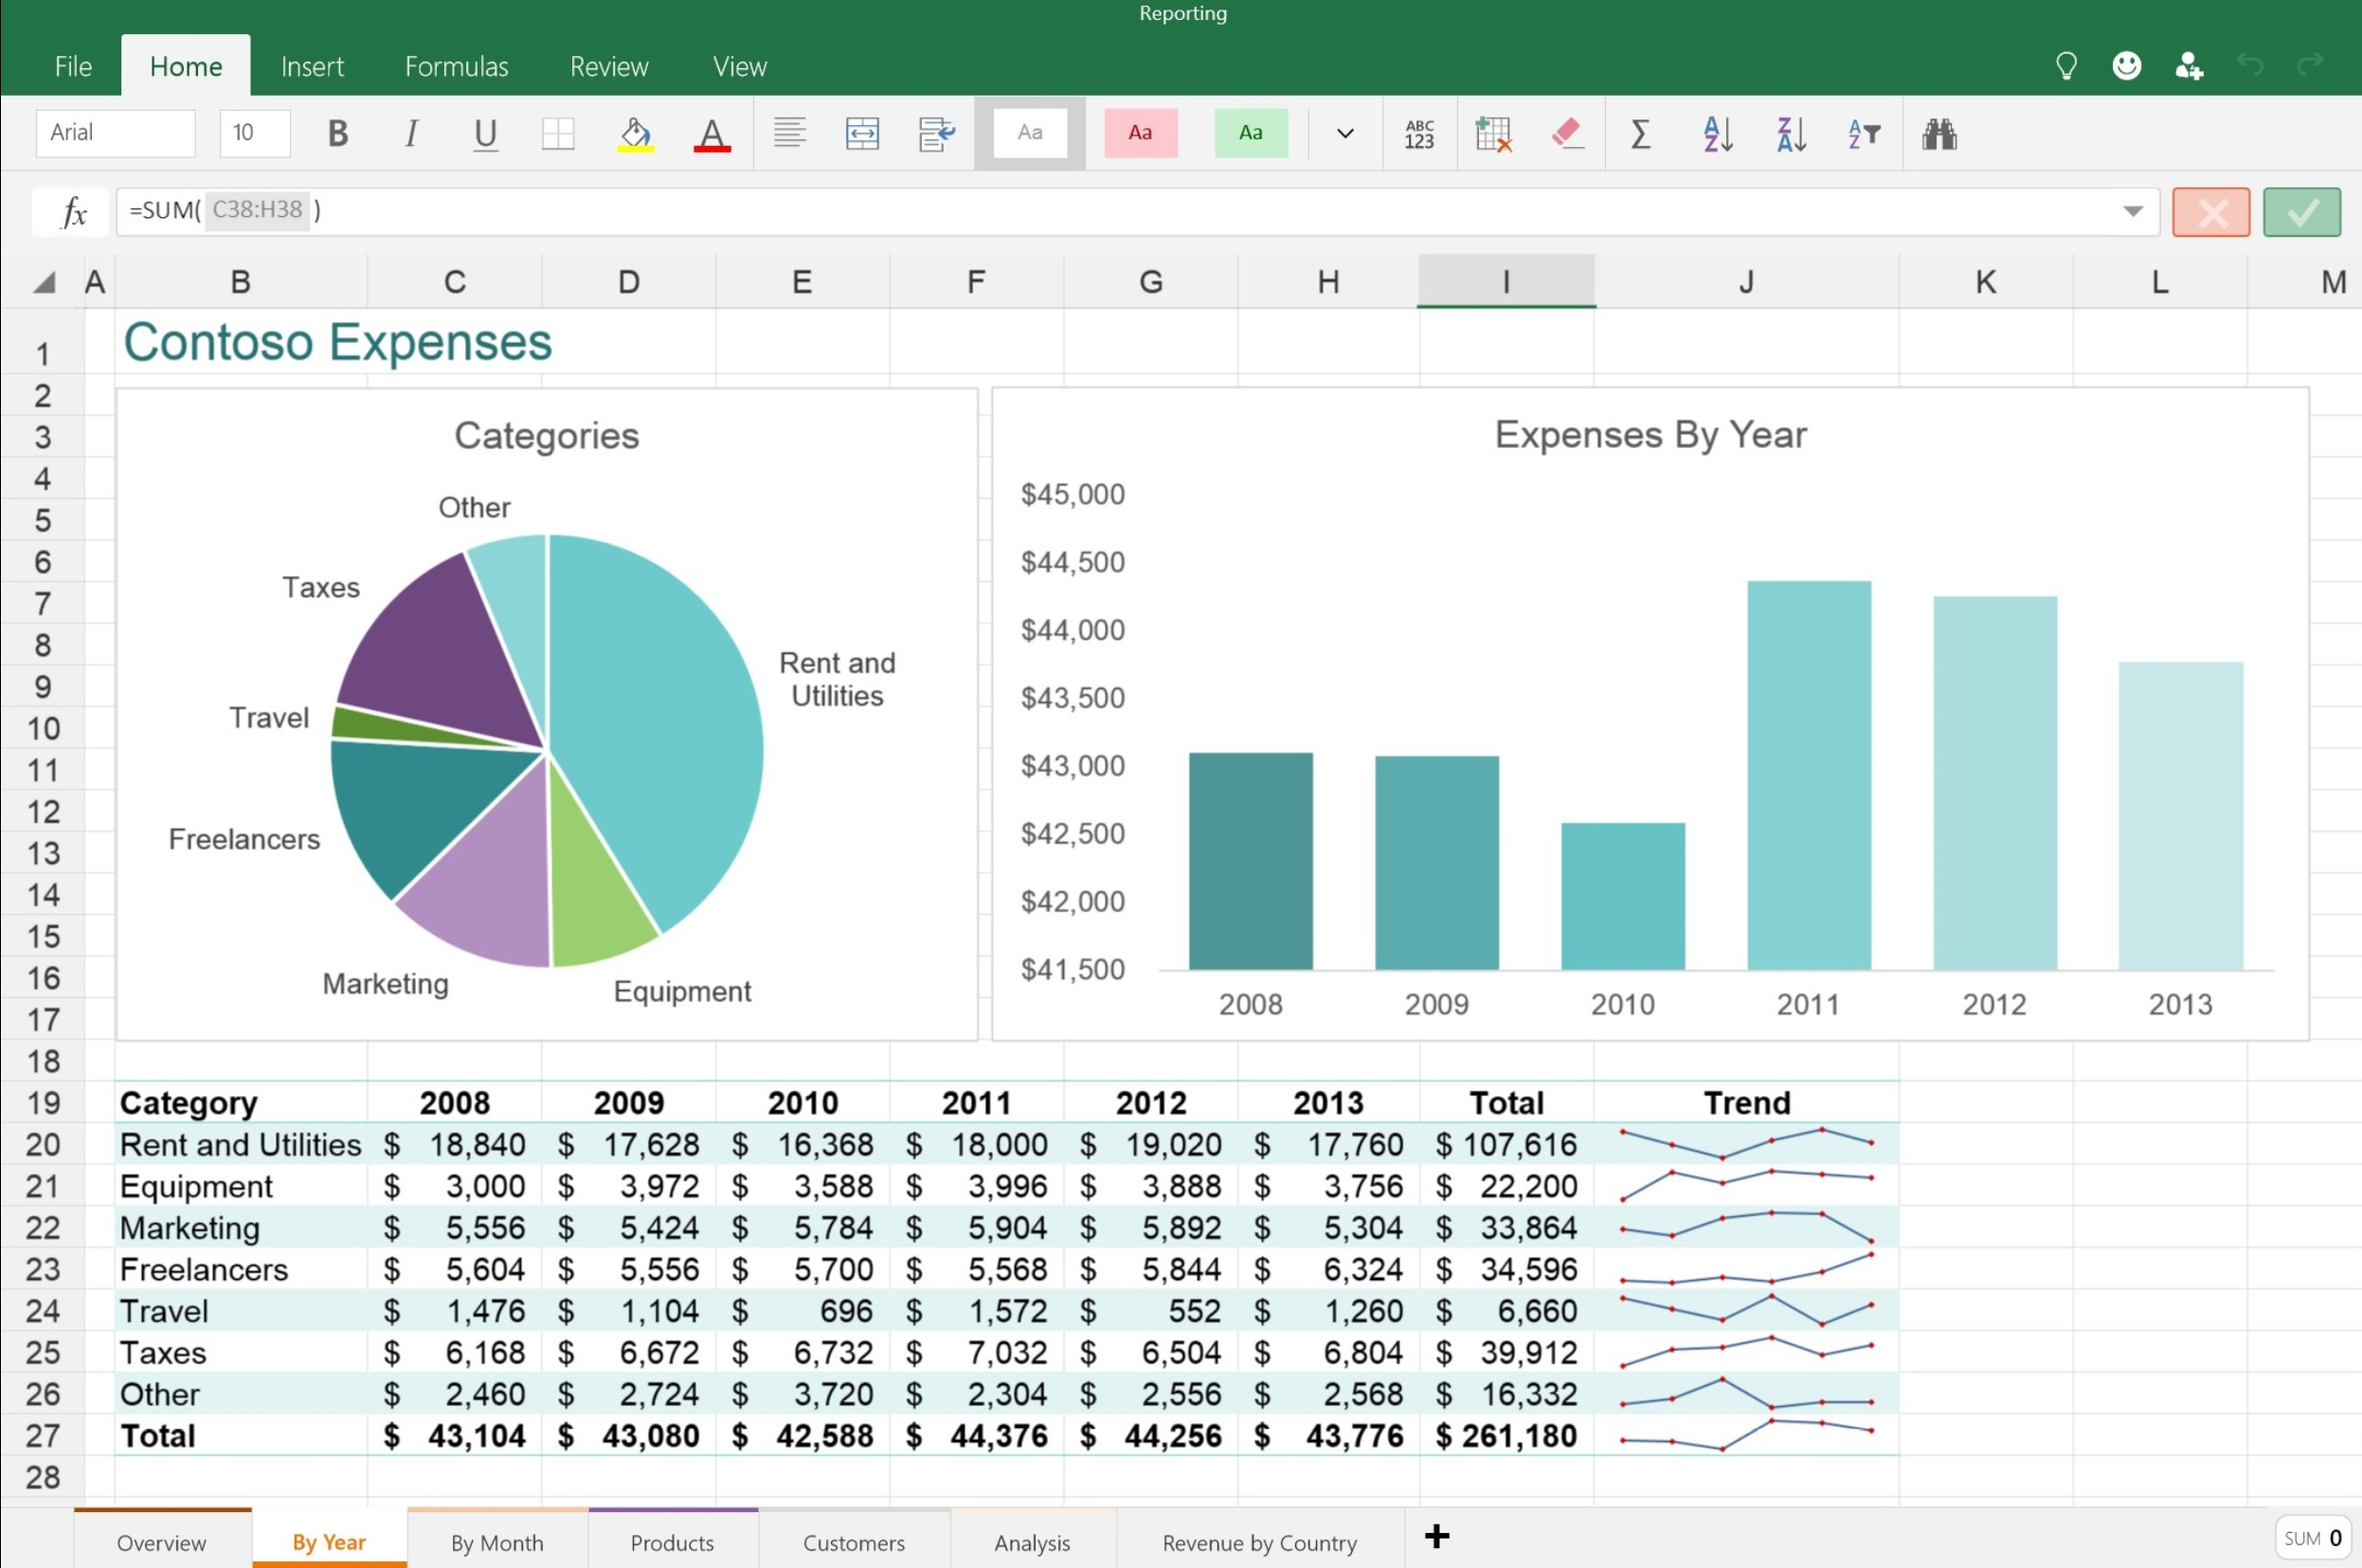 Ediblewildsus  Personable Features Available In The New Word Excel And Powerpoint Apps For  With Excellent Excel Touch App  With Amazing Excel Graph Standard Deviation Also How To Concatenate Two Cells In Excel In Addition Range Names Excel And How To Wrap Cells In Excel As Well As Counting Dates In Excel Additionally Sum A Row In Excel From Mspowerusercom With Ediblewildsus  Excellent Features Available In The New Word Excel And Powerpoint Apps For  With Amazing Excel Touch App  And Personable Excel Graph Standard Deviation Also How To Concatenate Two Cells In Excel In Addition Range Names Excel From Mspowerusercom